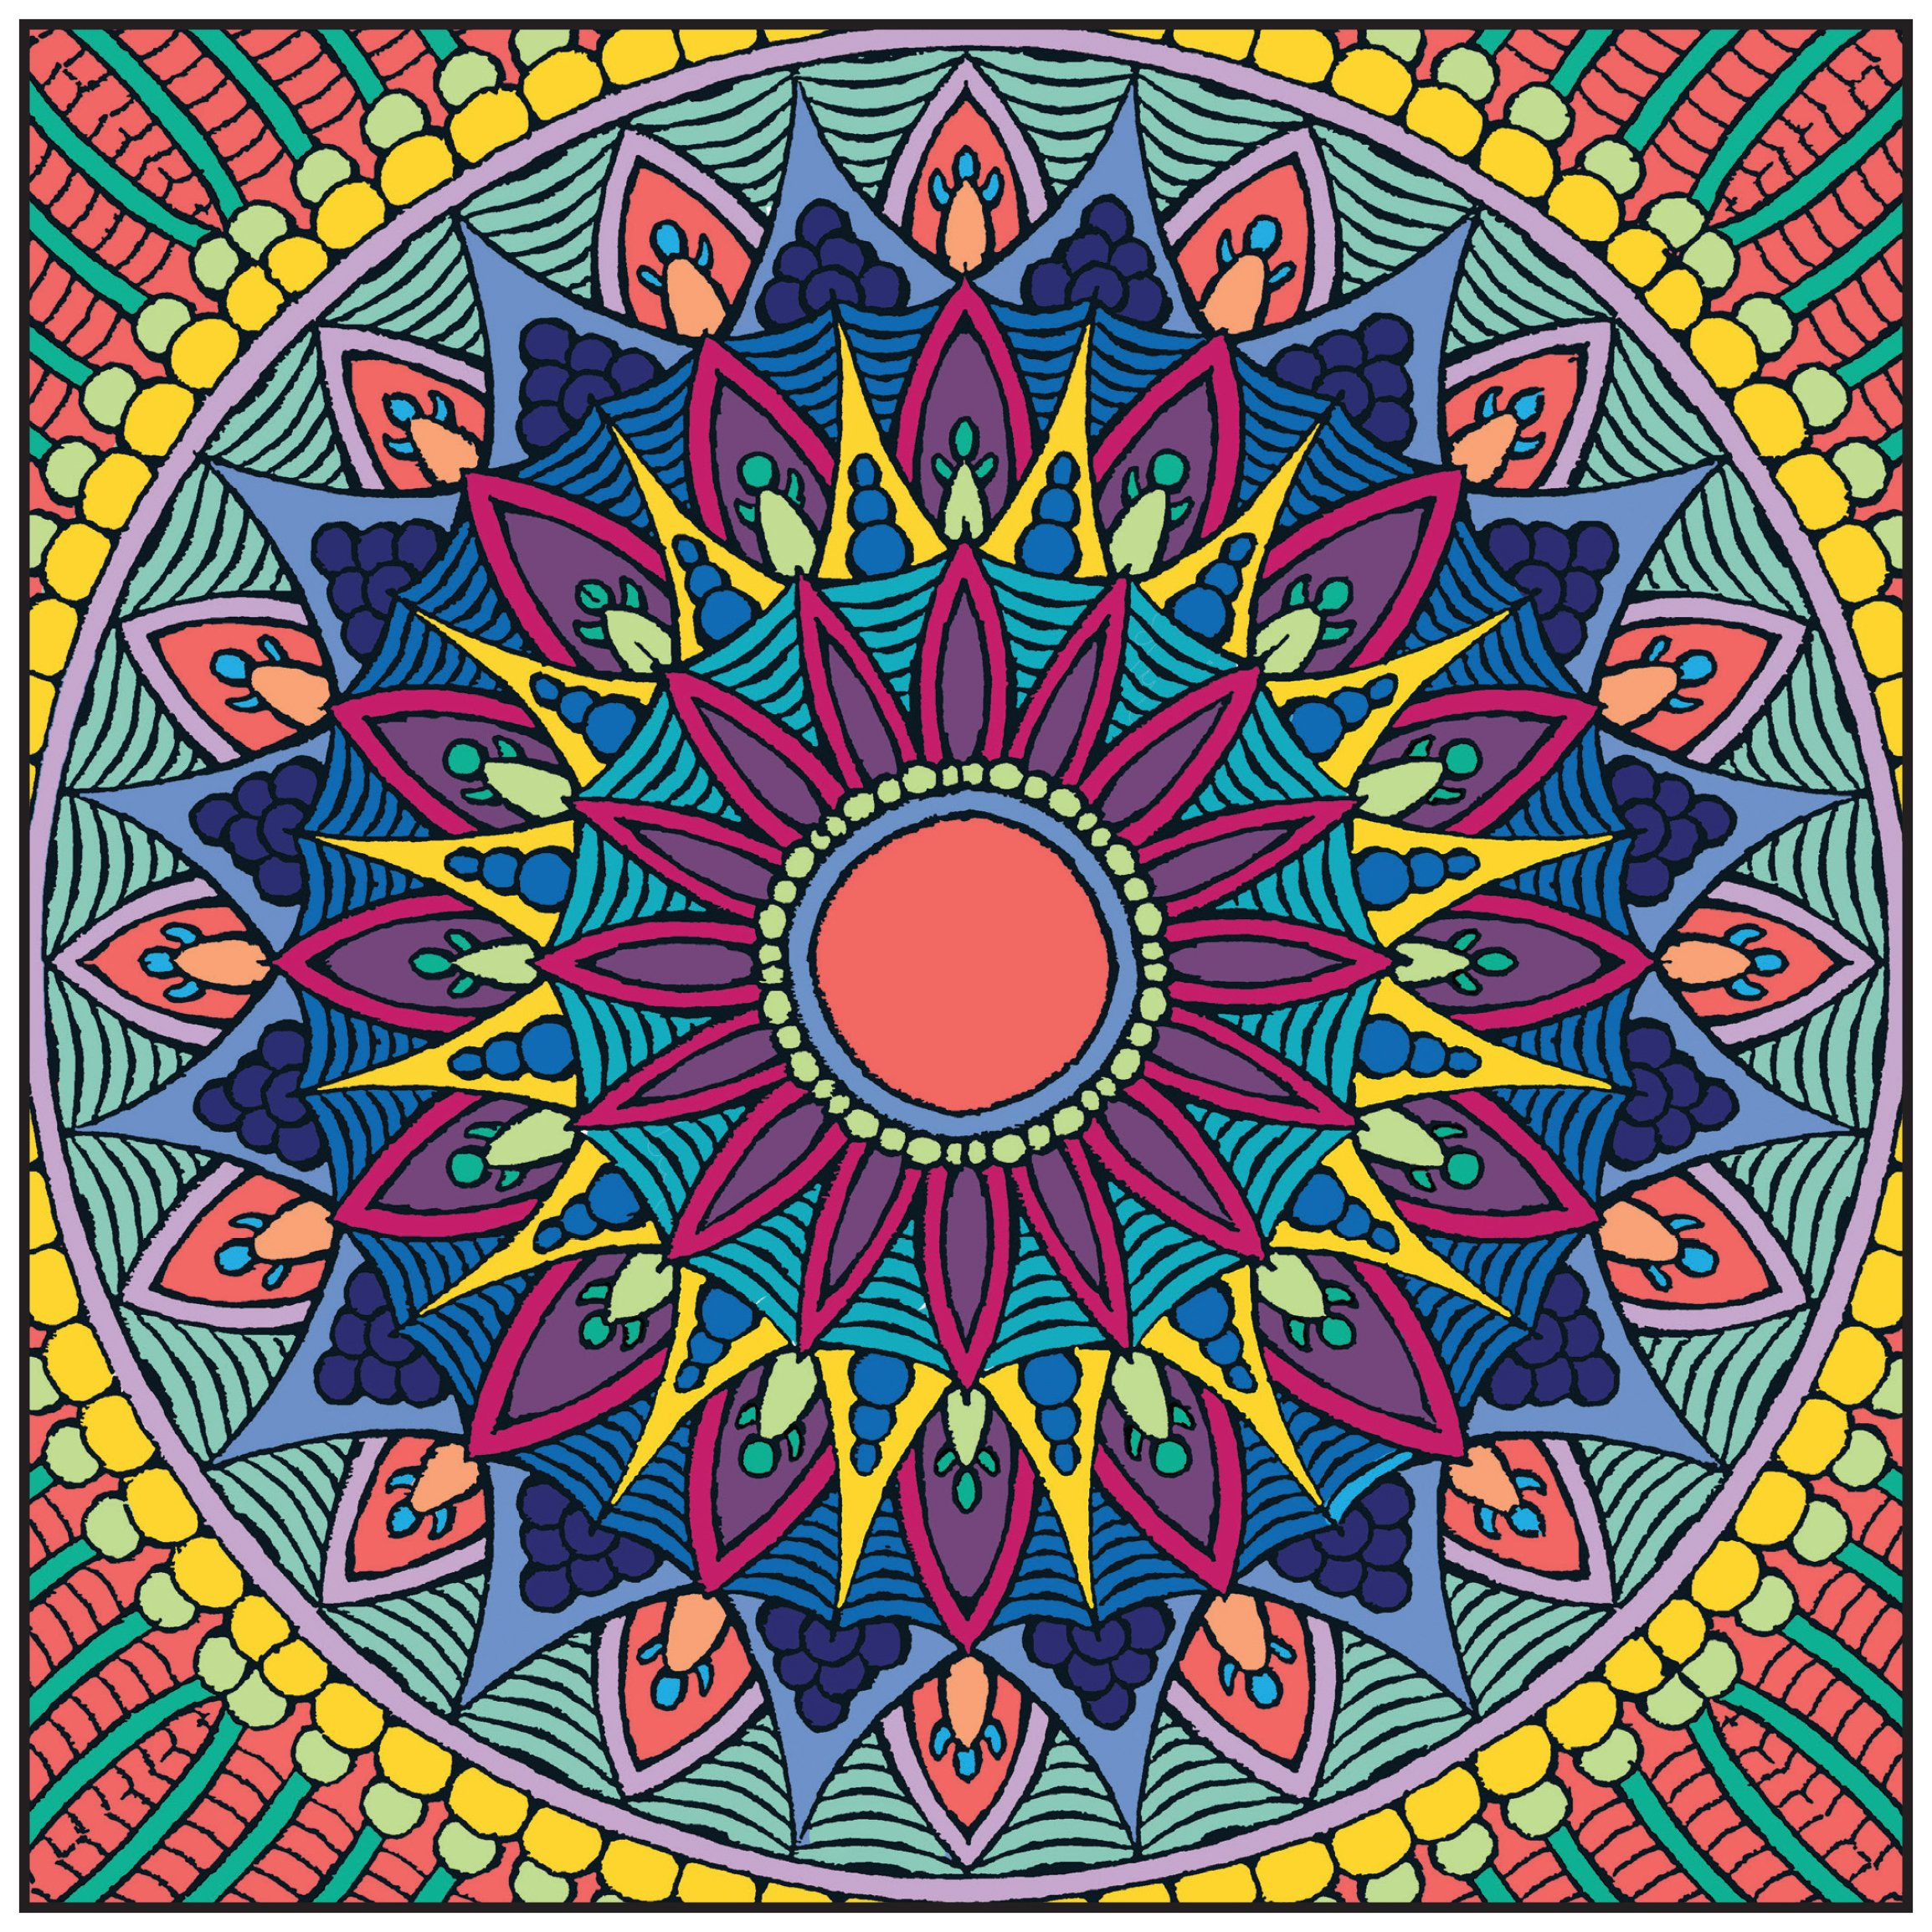 Adults colouring book pages - Amazon Com Mandalas Adult Coloring Book With Bonus Relaxation Music Cd Included Color With Music 9781988137032 Newbourne Media Books